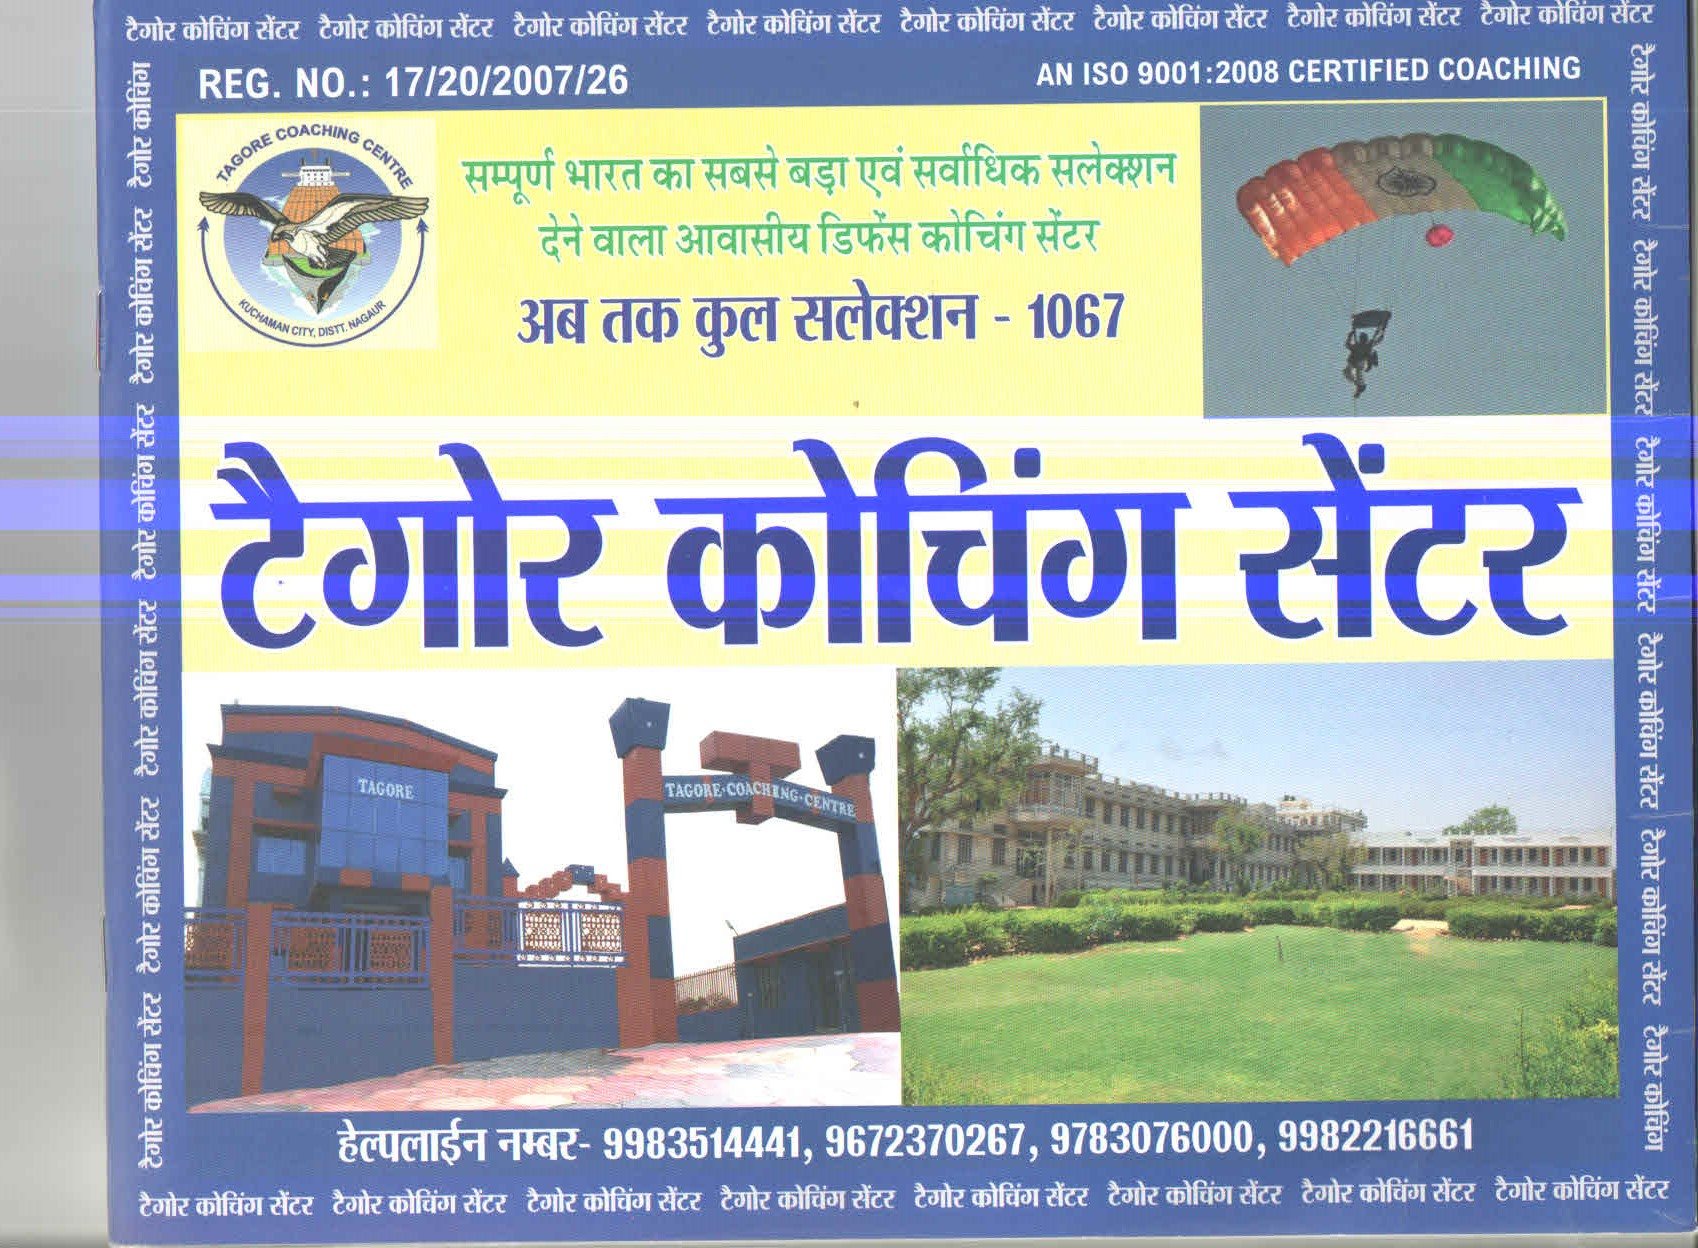 Tagore Defence Coaching Center